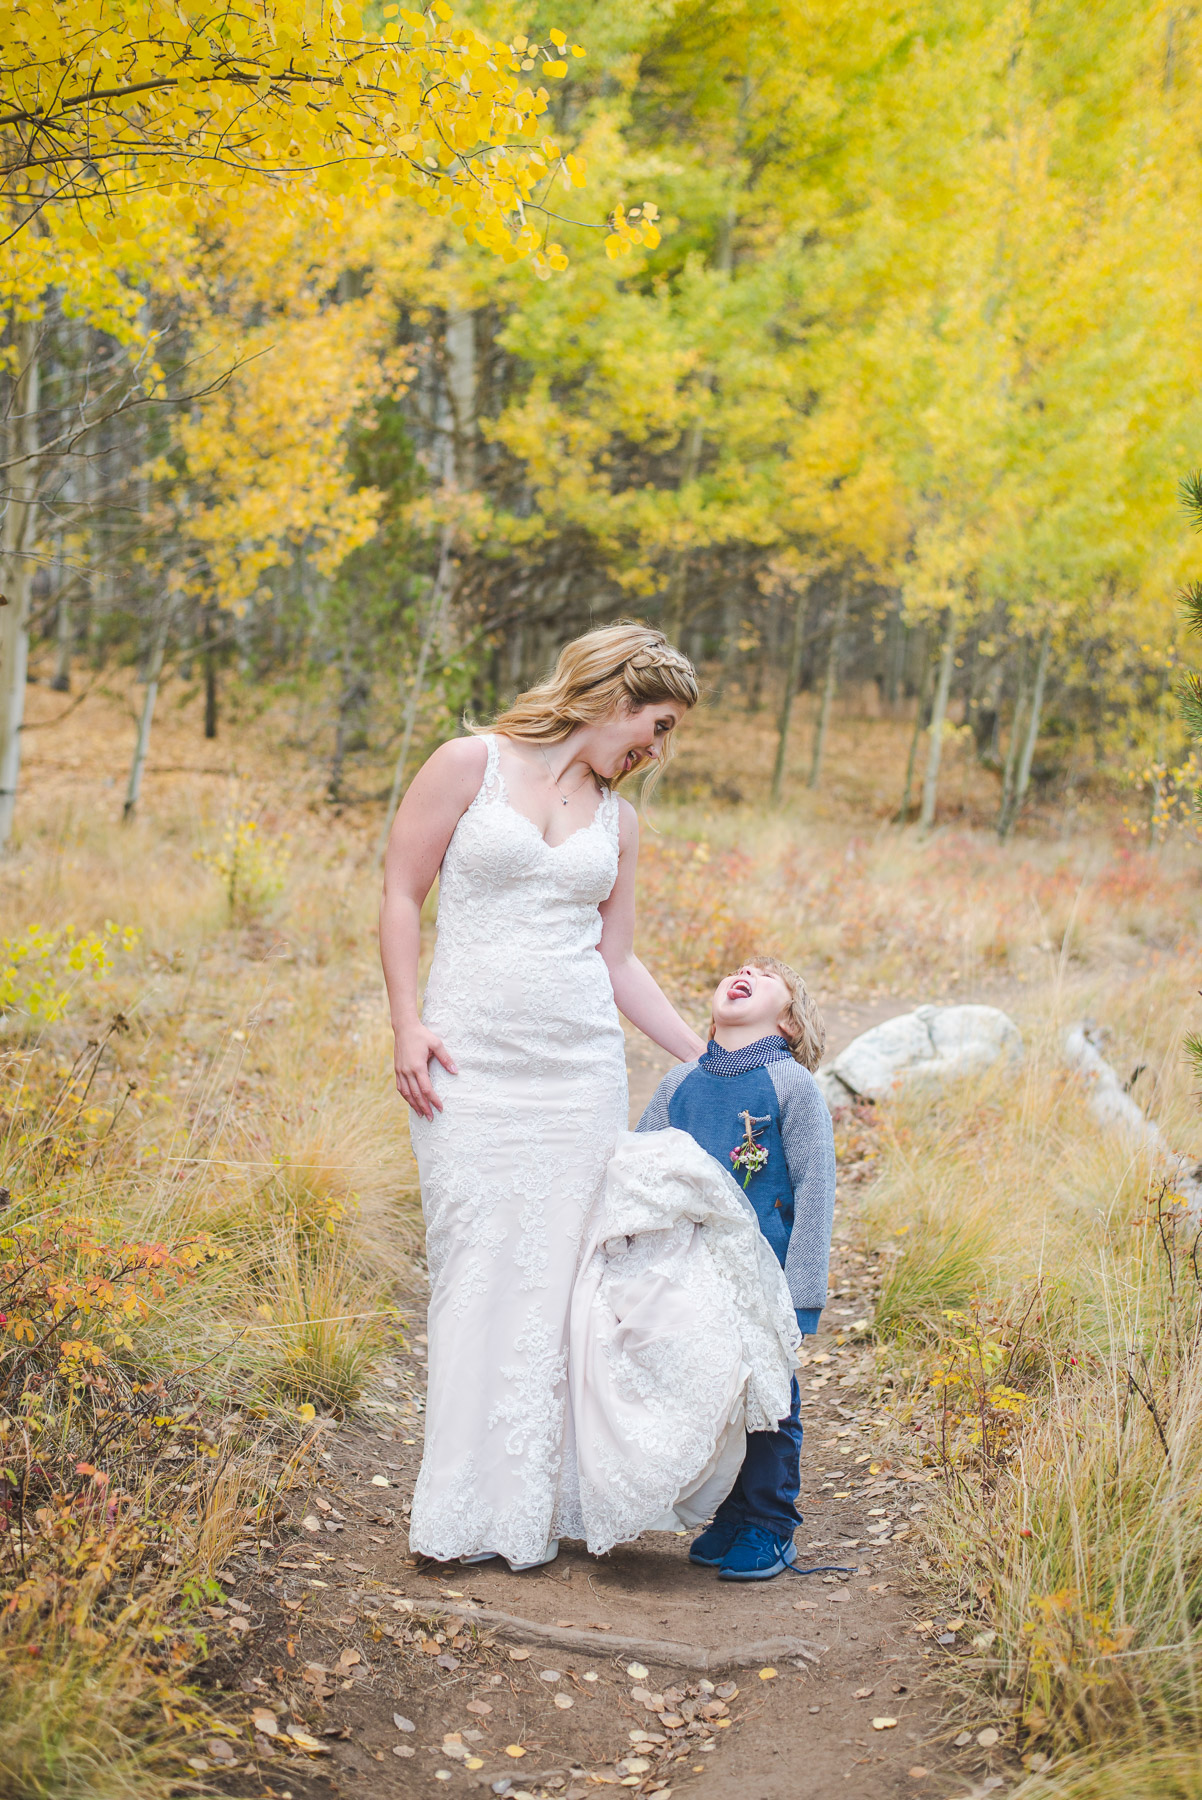 Mom bride and older brother take portraits together | Autumn elopement in Breckenridge, Colorado | Summit Mountain Weddings